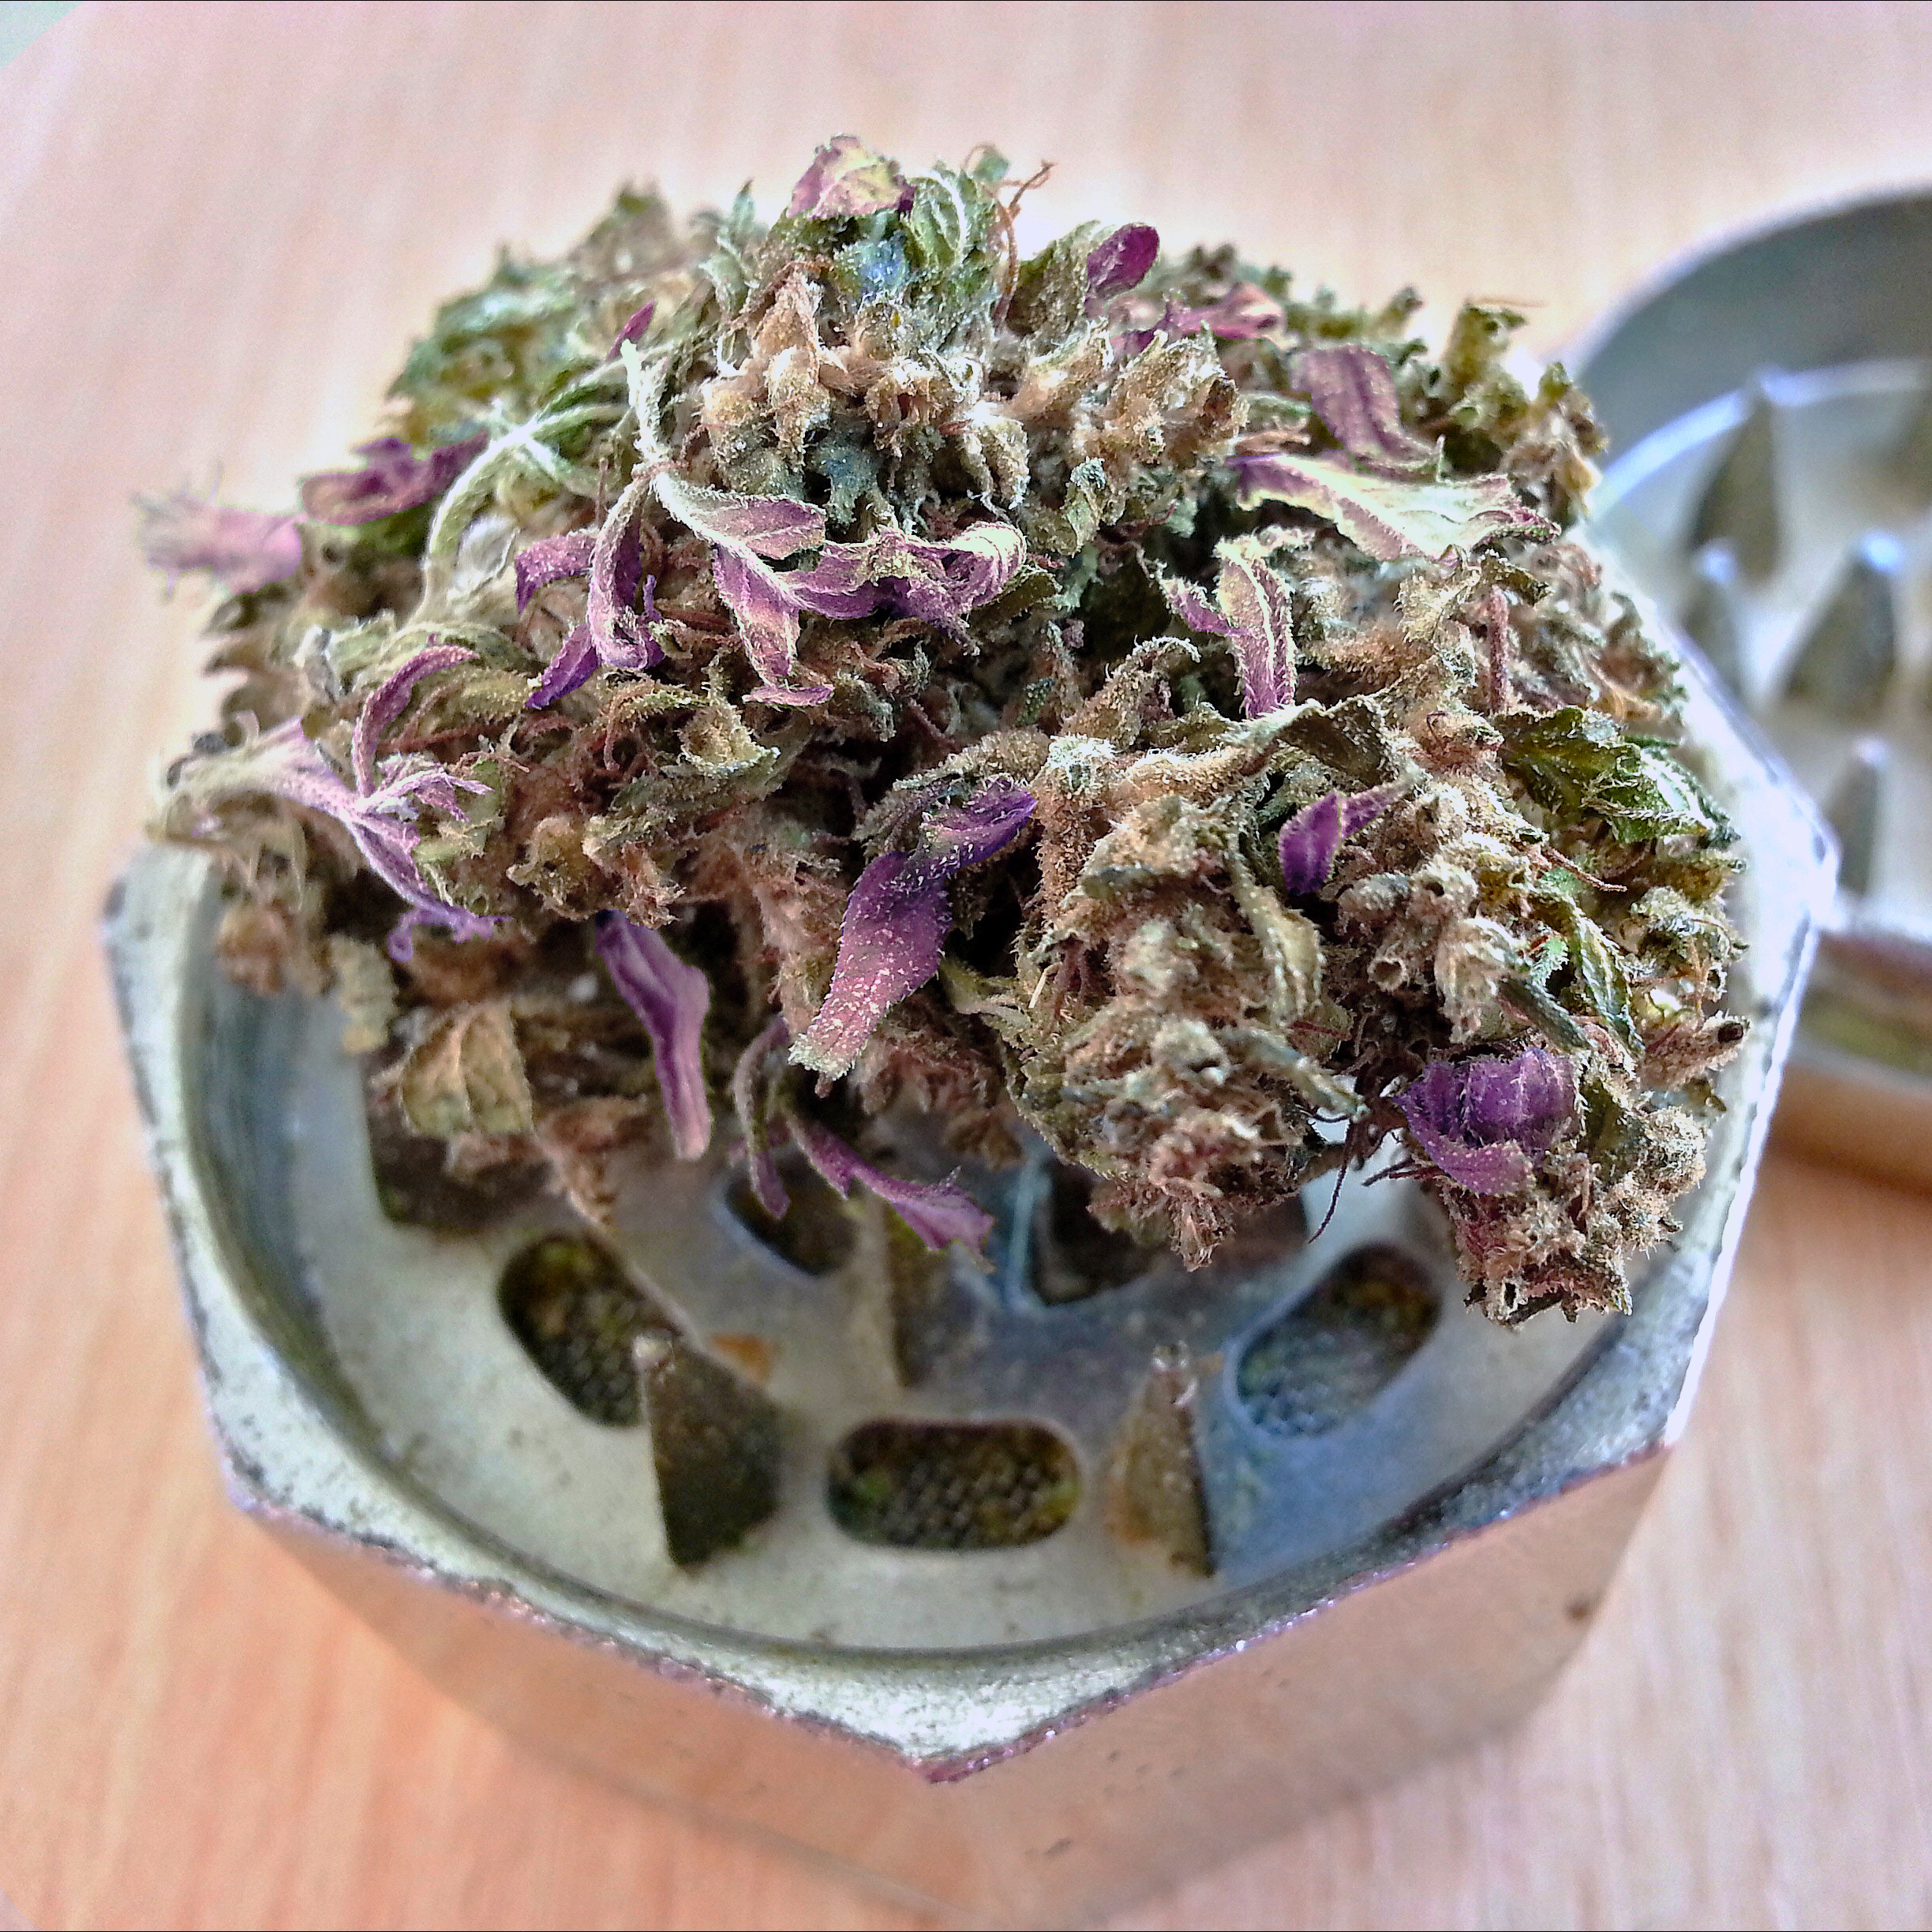 purple-haze-weed